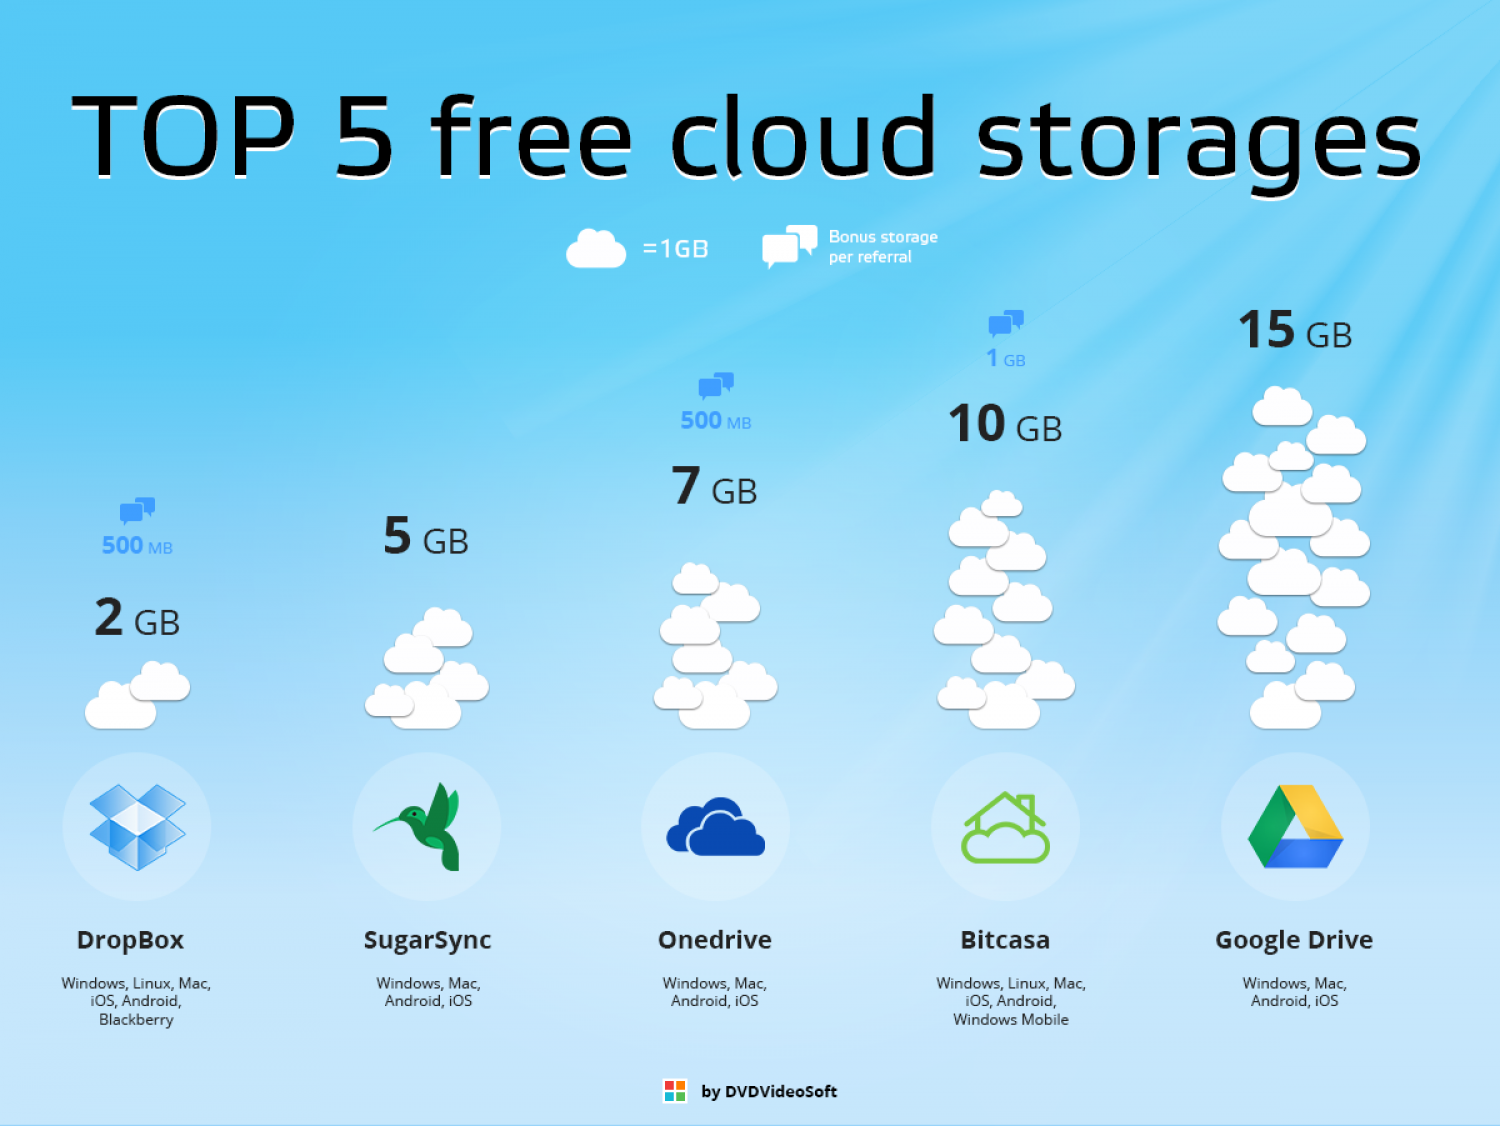 Top 5 Free Cloud Storages Infographic